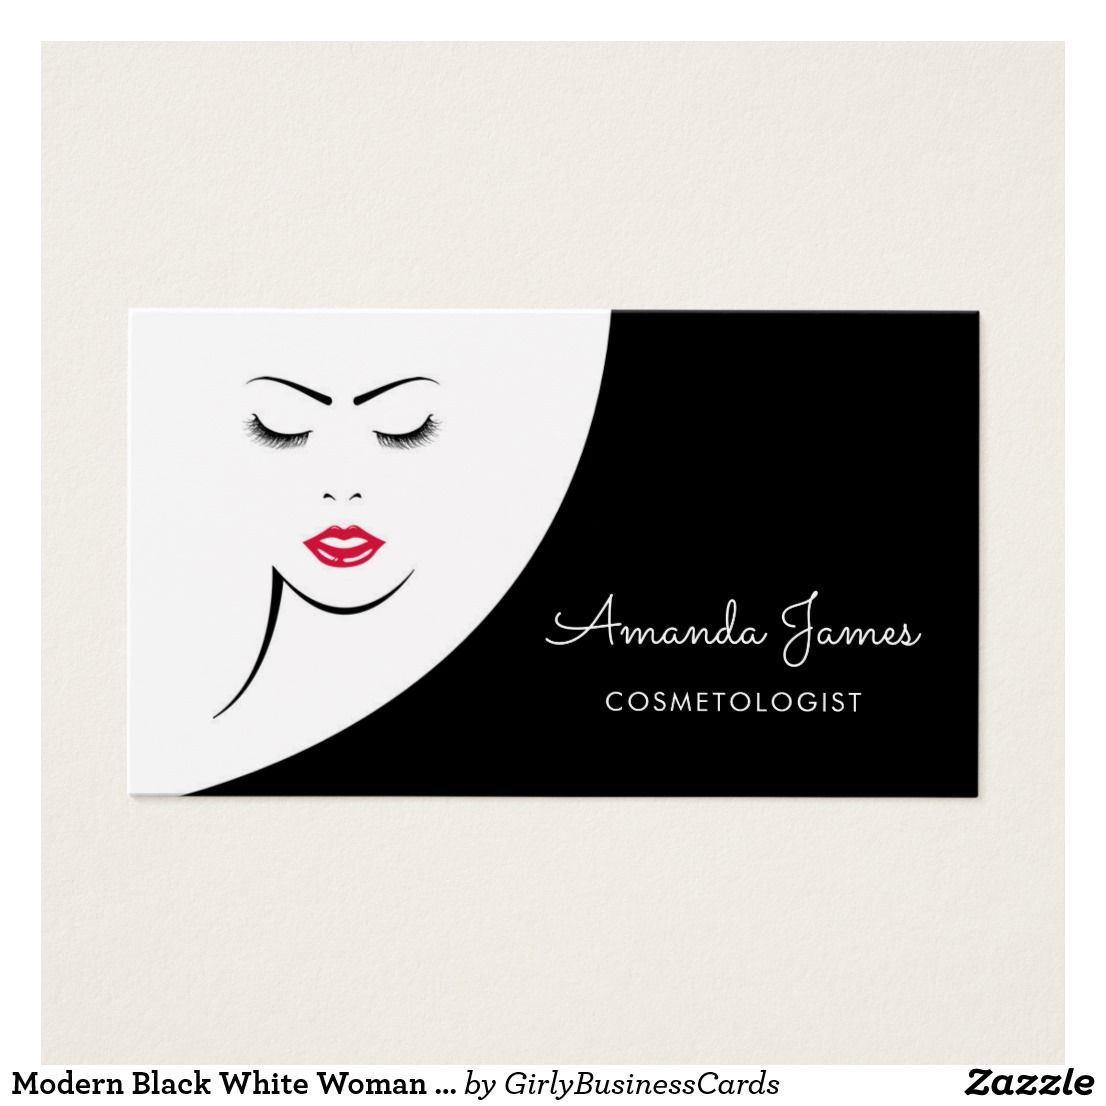 Modern Black White Woman Red Lips Cosmetologist Business Card ...